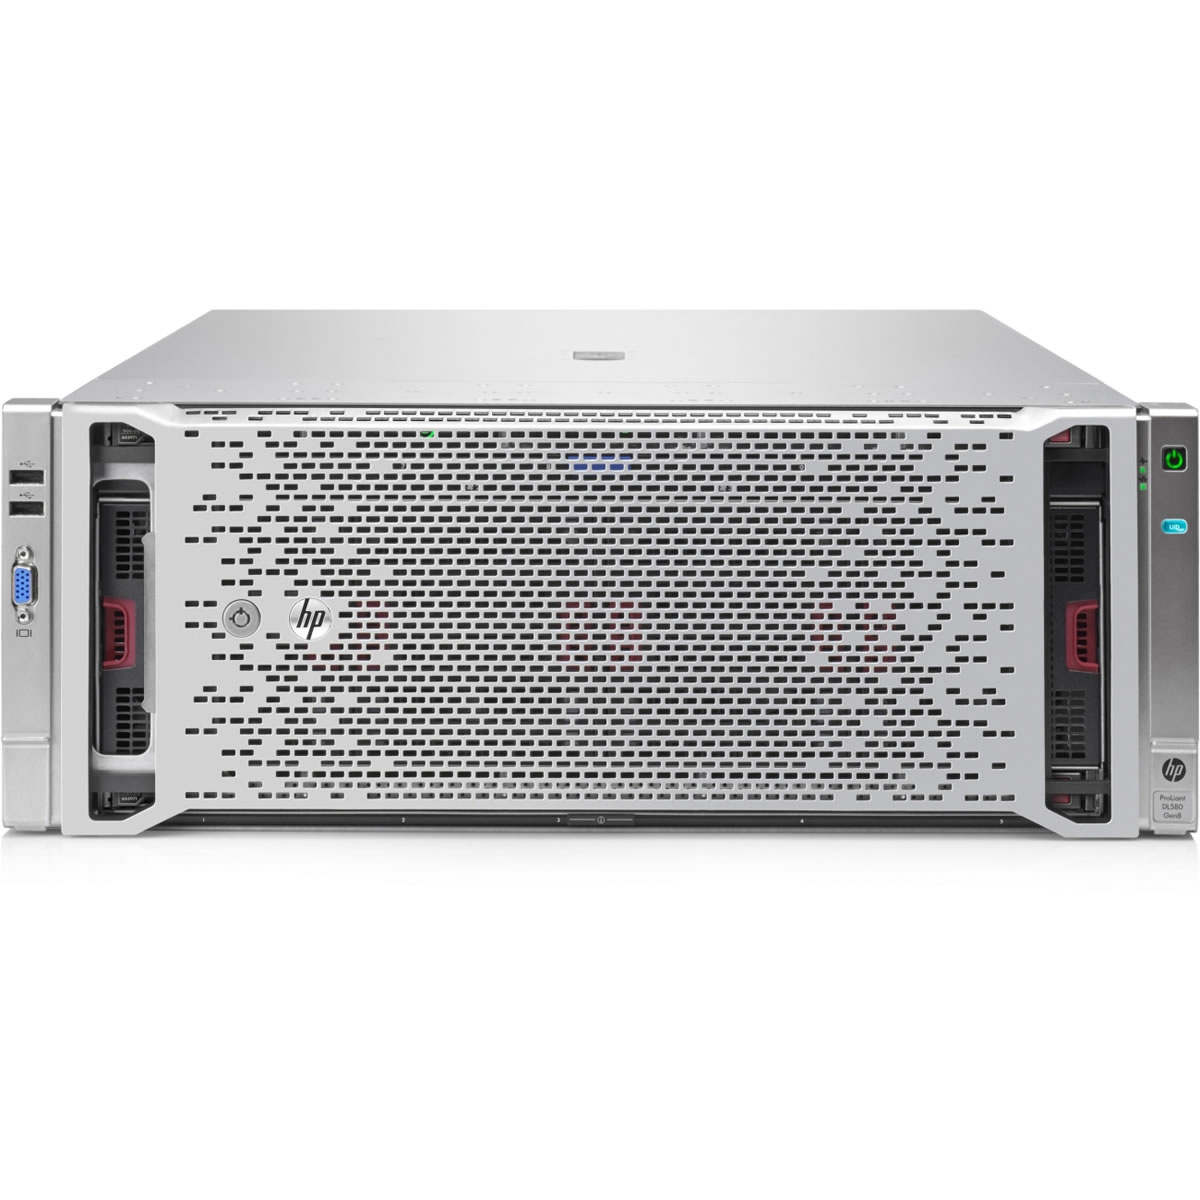 Сервер HP Proliant DL580 Gen9 Rack (4U) 793314-B21